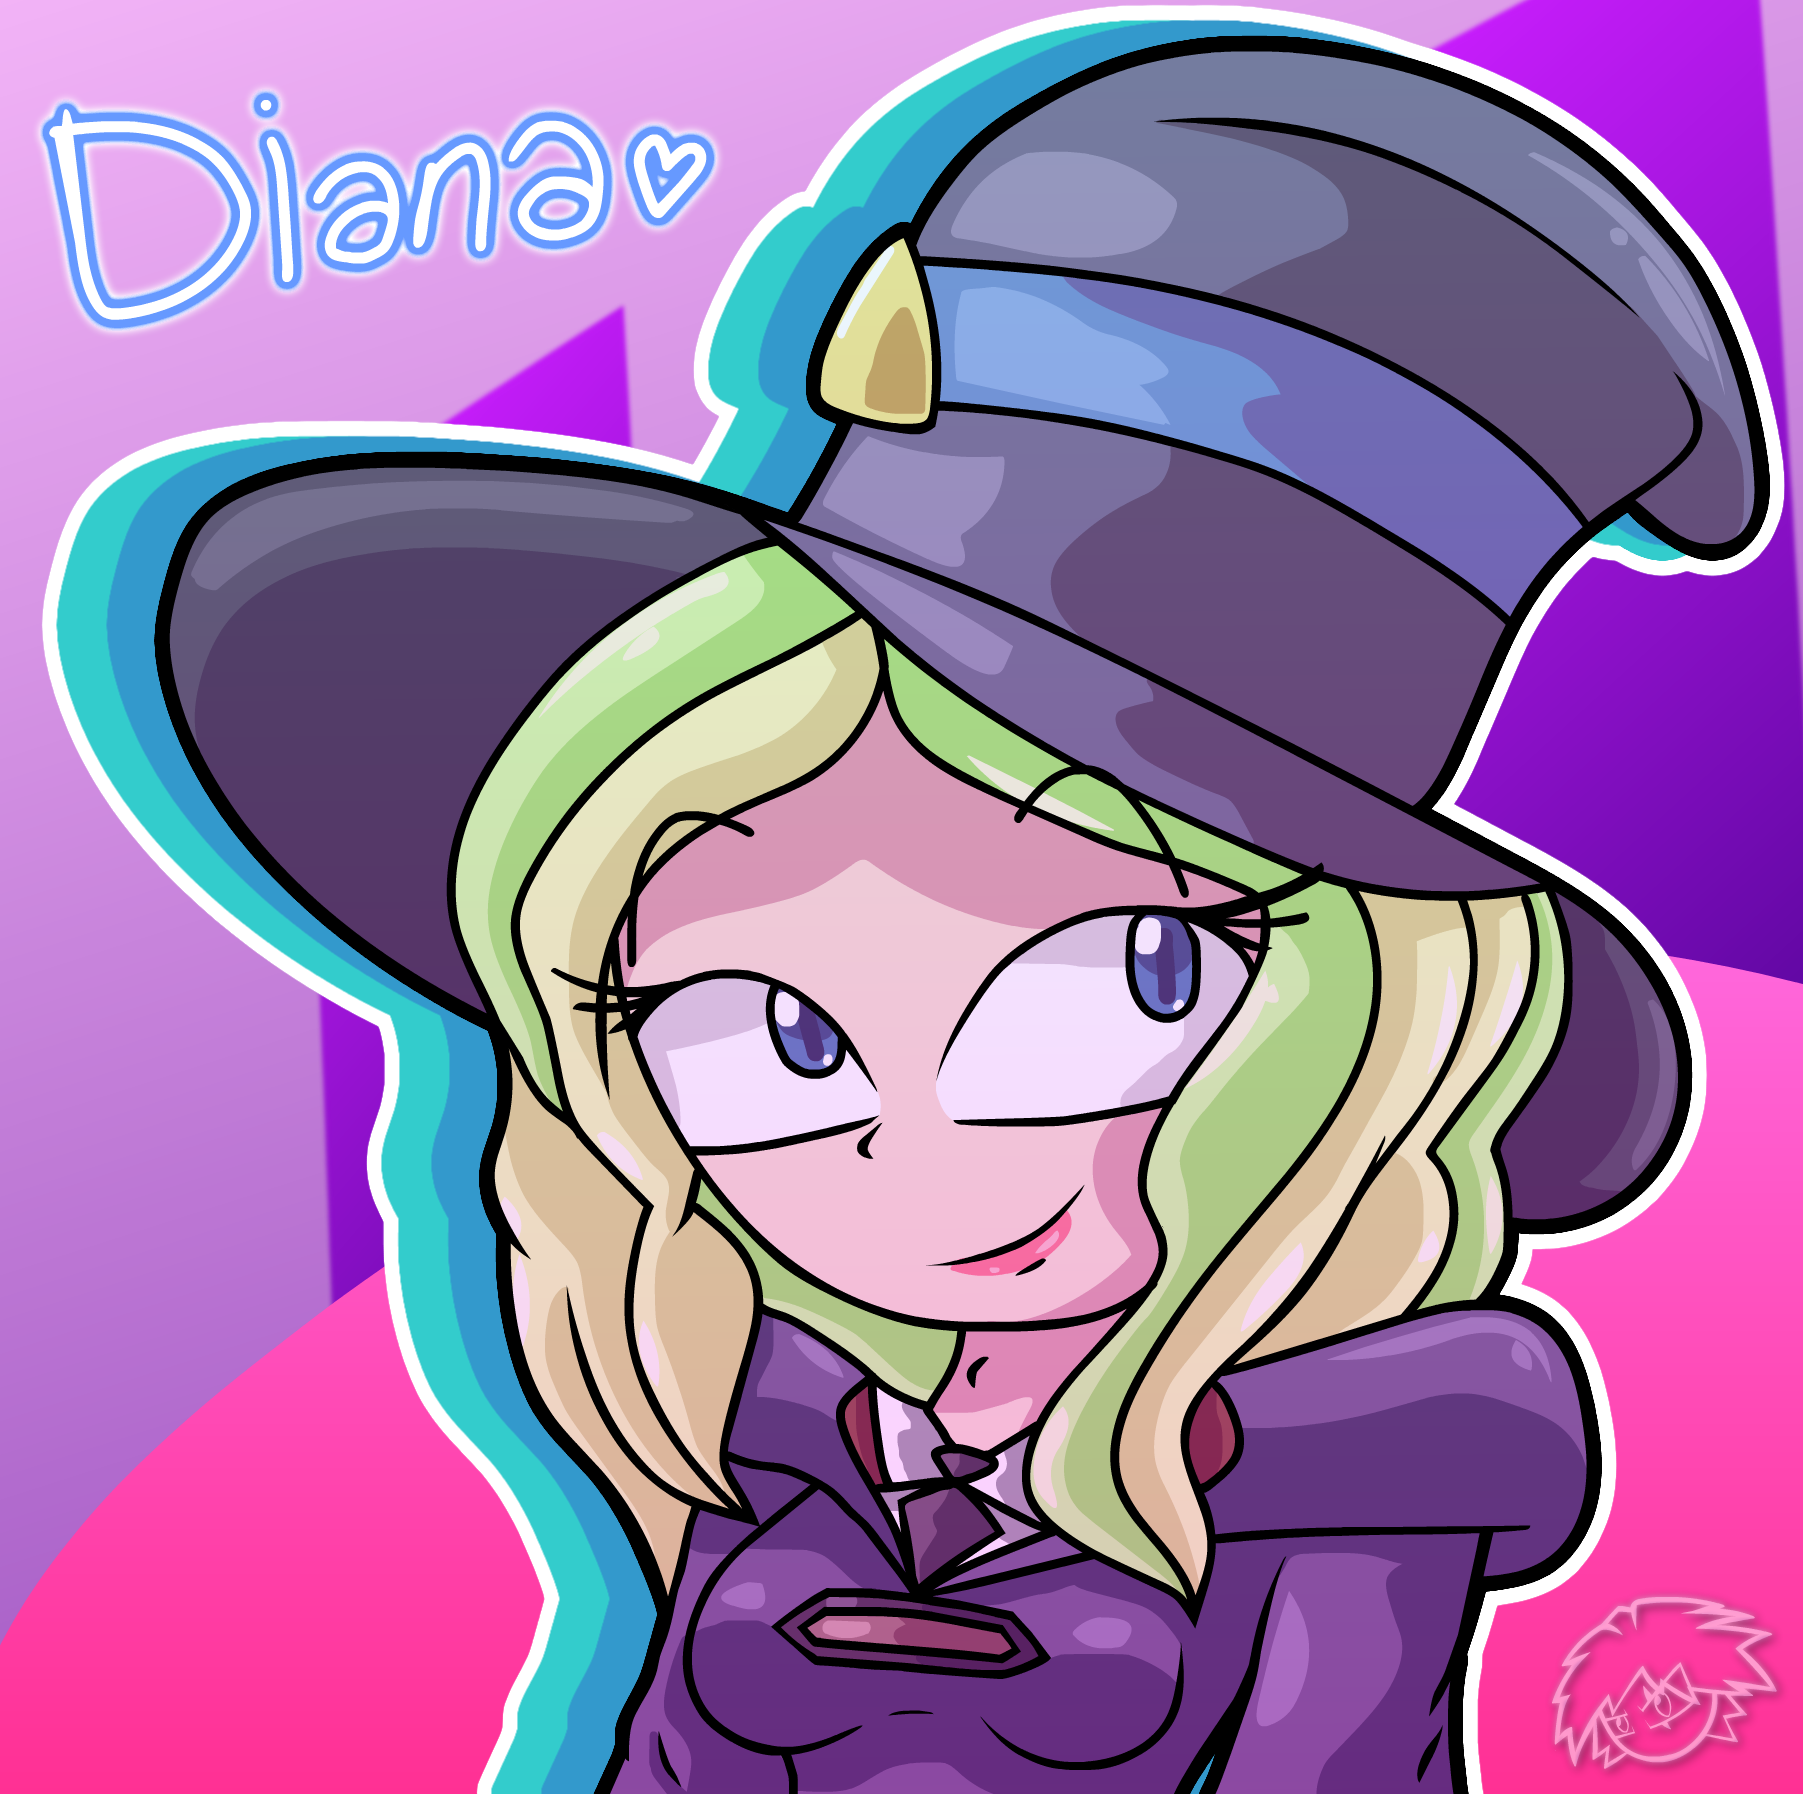 Diana <3 by StickBlueAnimated